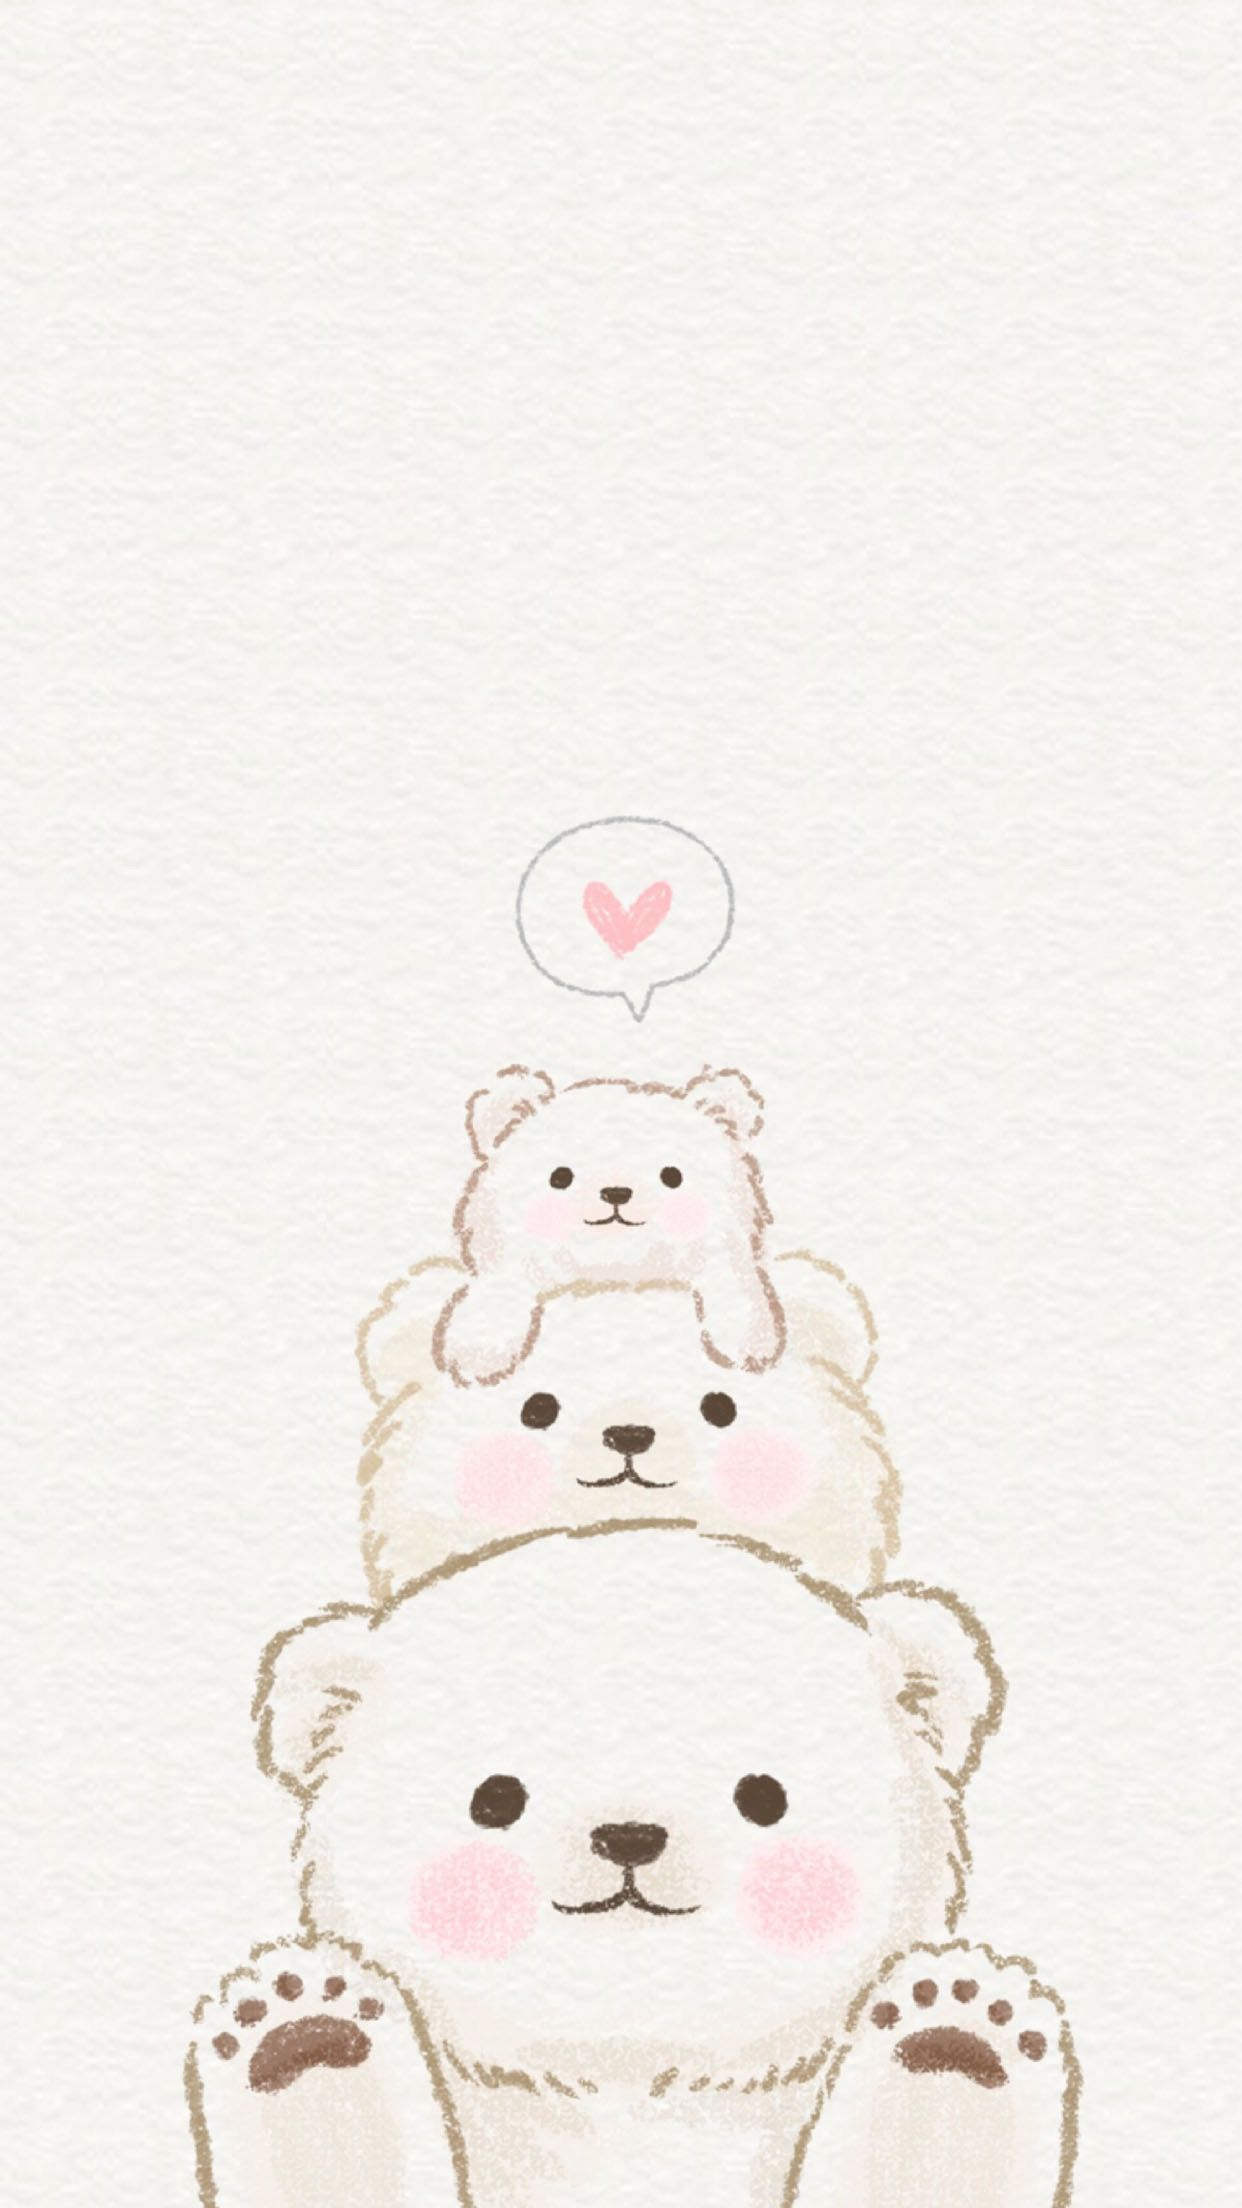 Image of: Cat Bear Love Kawaii Wallpaper Phone Wallpaper Cute Soft Wallpaper Screen Wallpaper Pastel Pinterest Bear Love Phone Wallpapers Pinterest Cute Wallpapers Cute